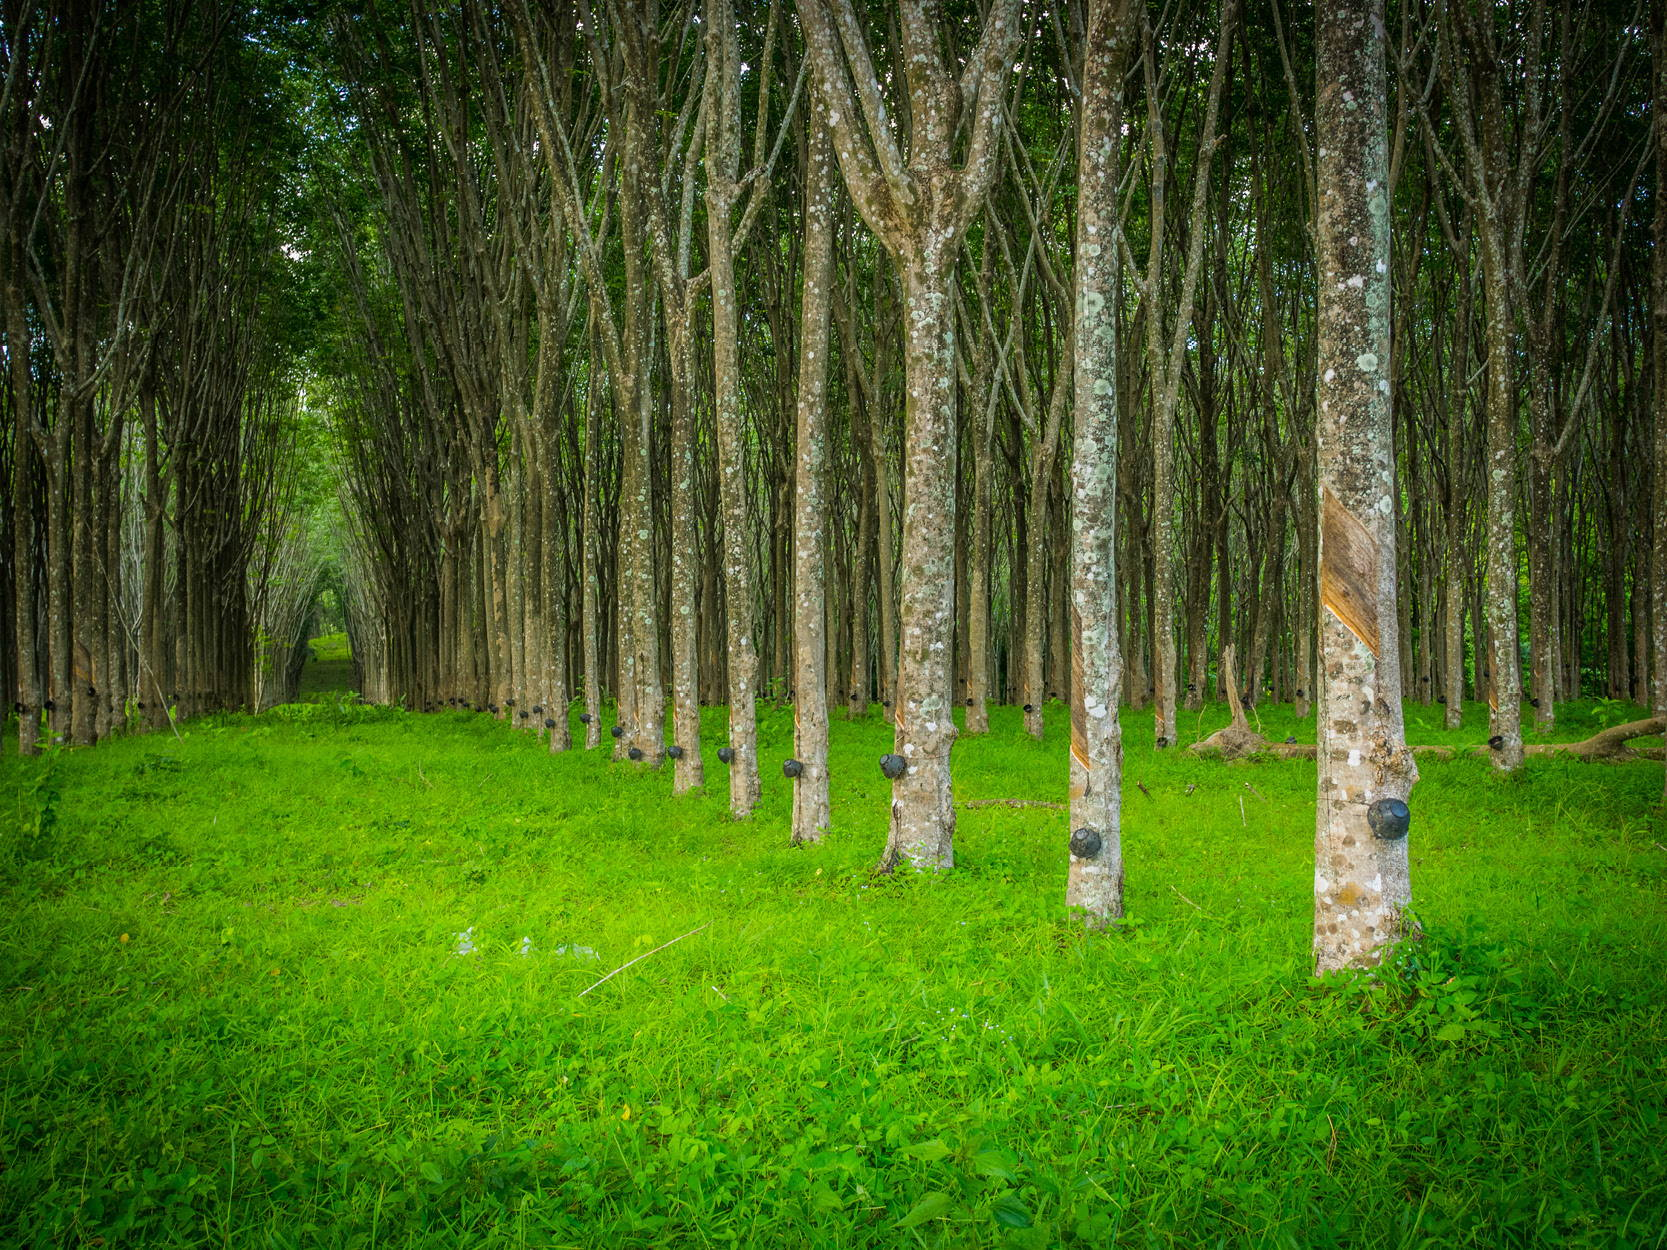 Forest of latex rubber trees. Image